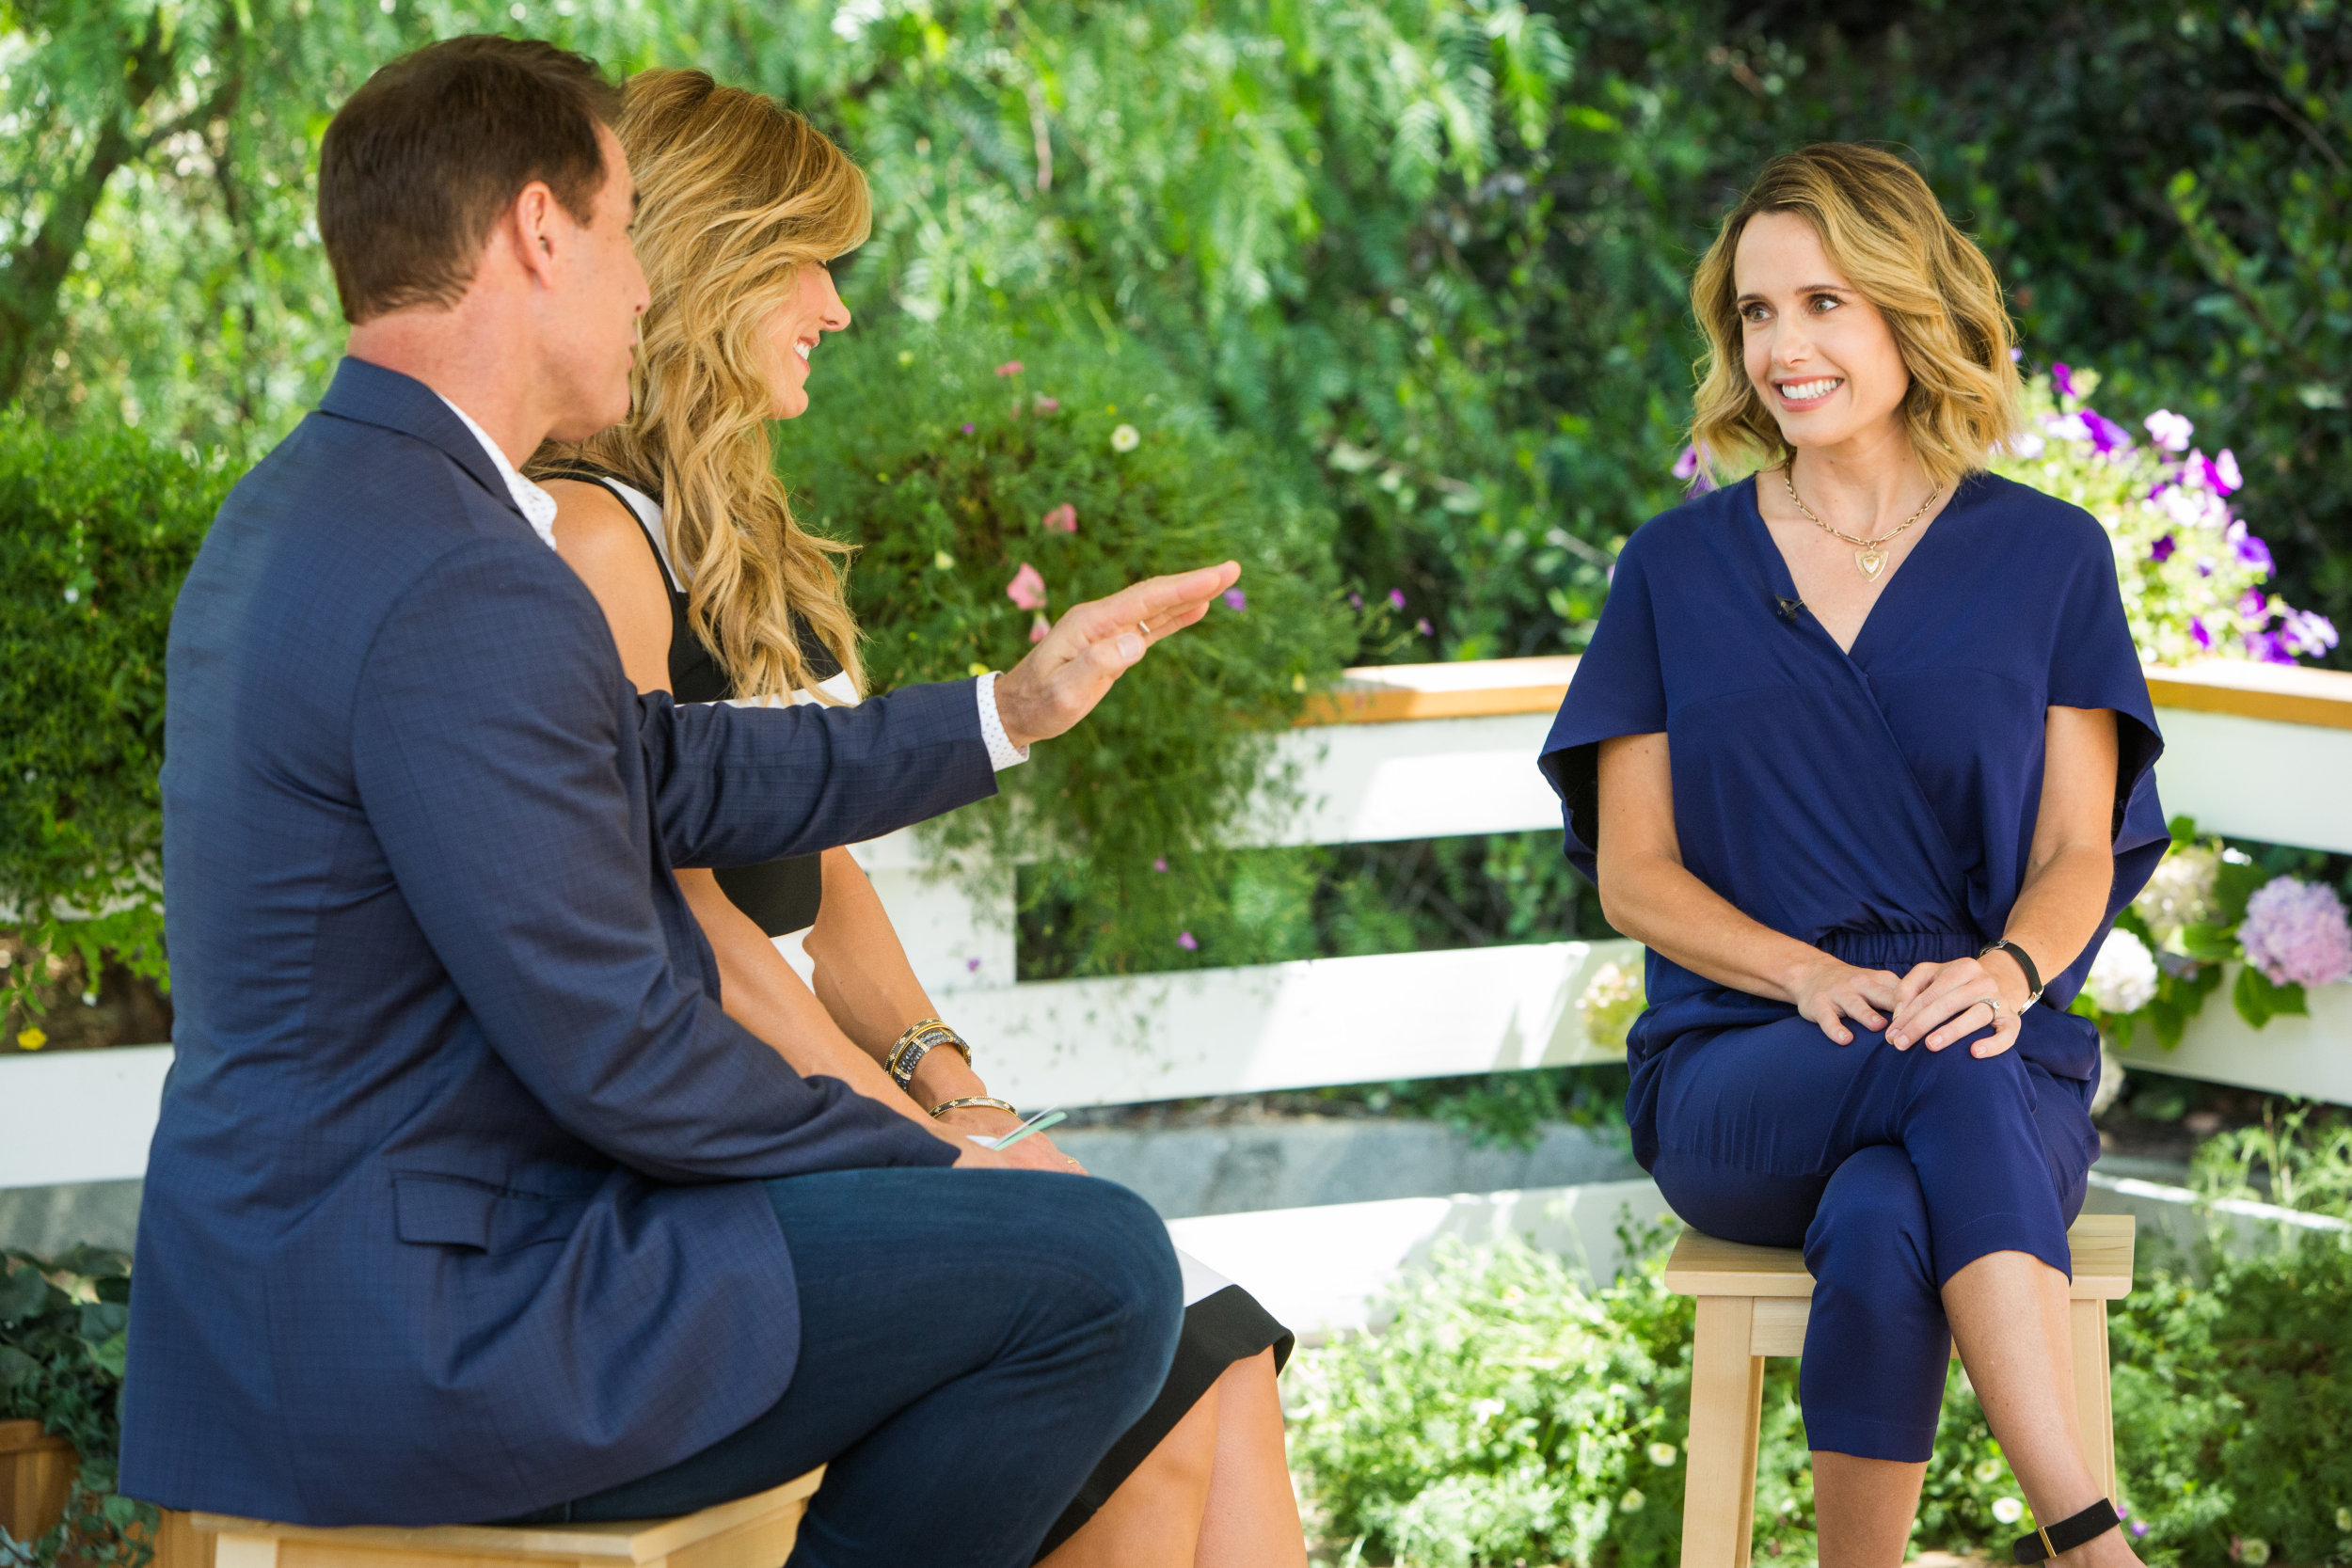 Hollywood steals home and family - Wednesday September 7th 2016